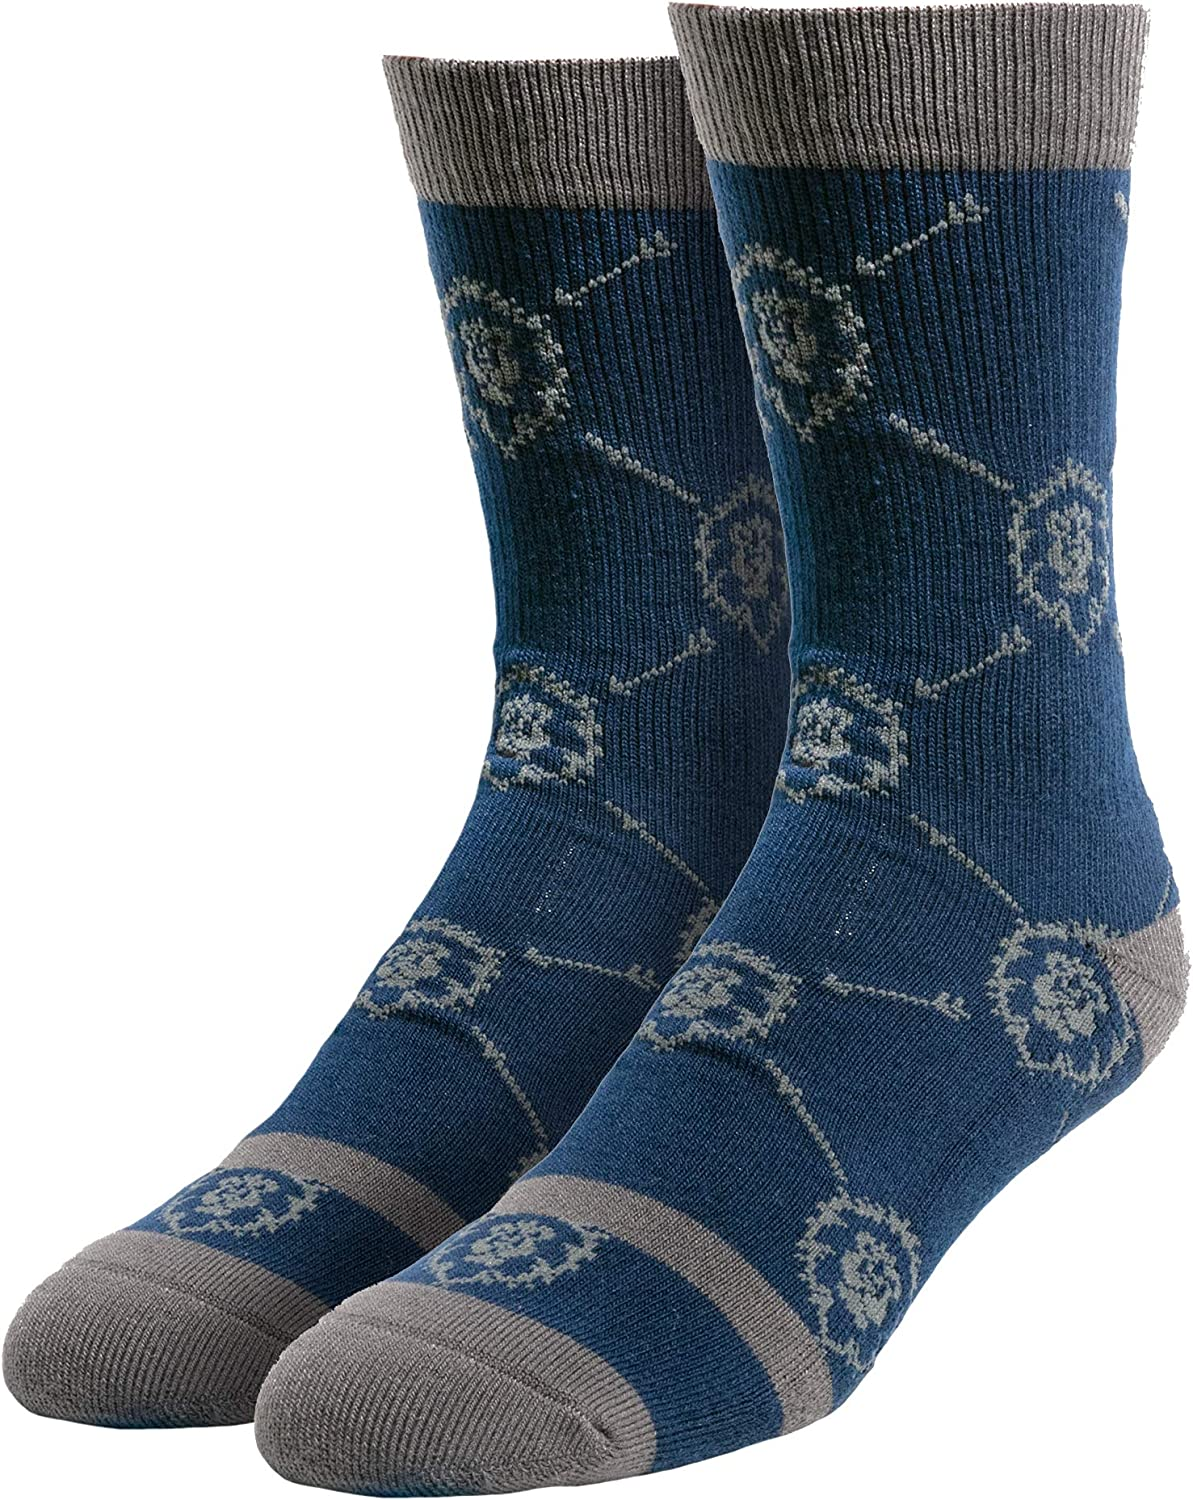 JINX World of Warcraft Alliance Glory and Honor Embroidered Athletic Crew Socks, 1 Pair